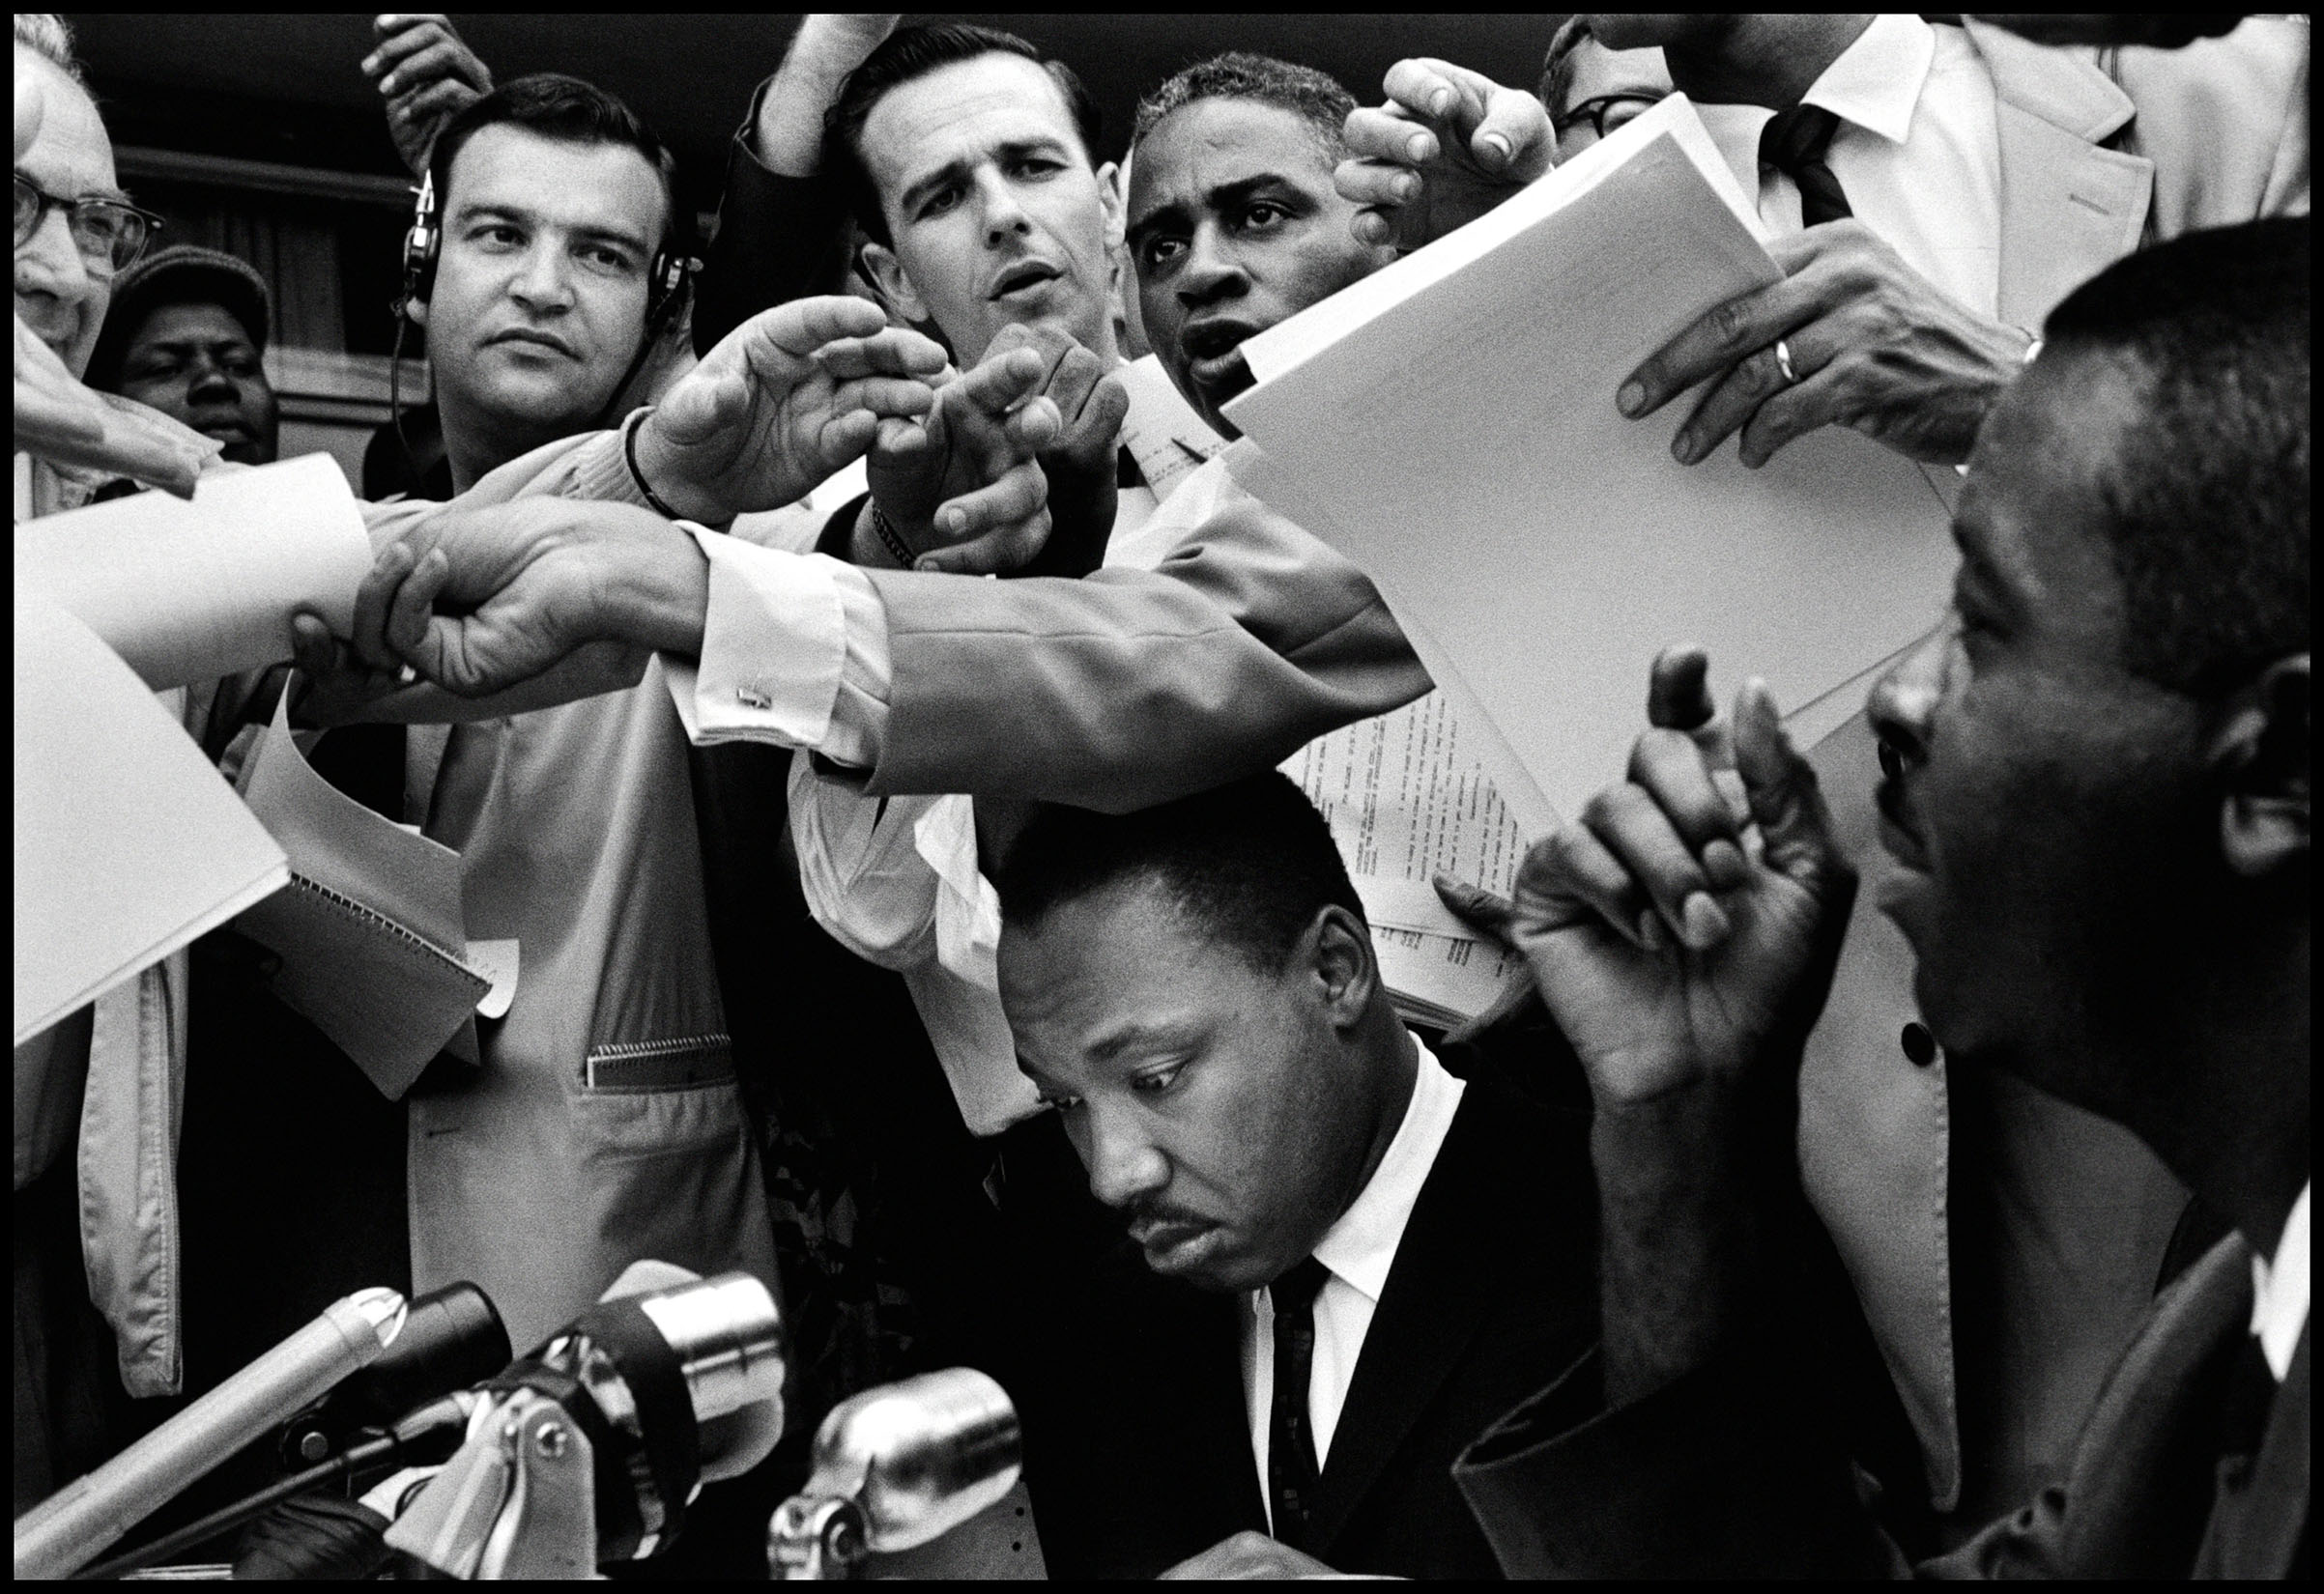 Martin Luther King Jr. attends a press conference in Alabama in 1963